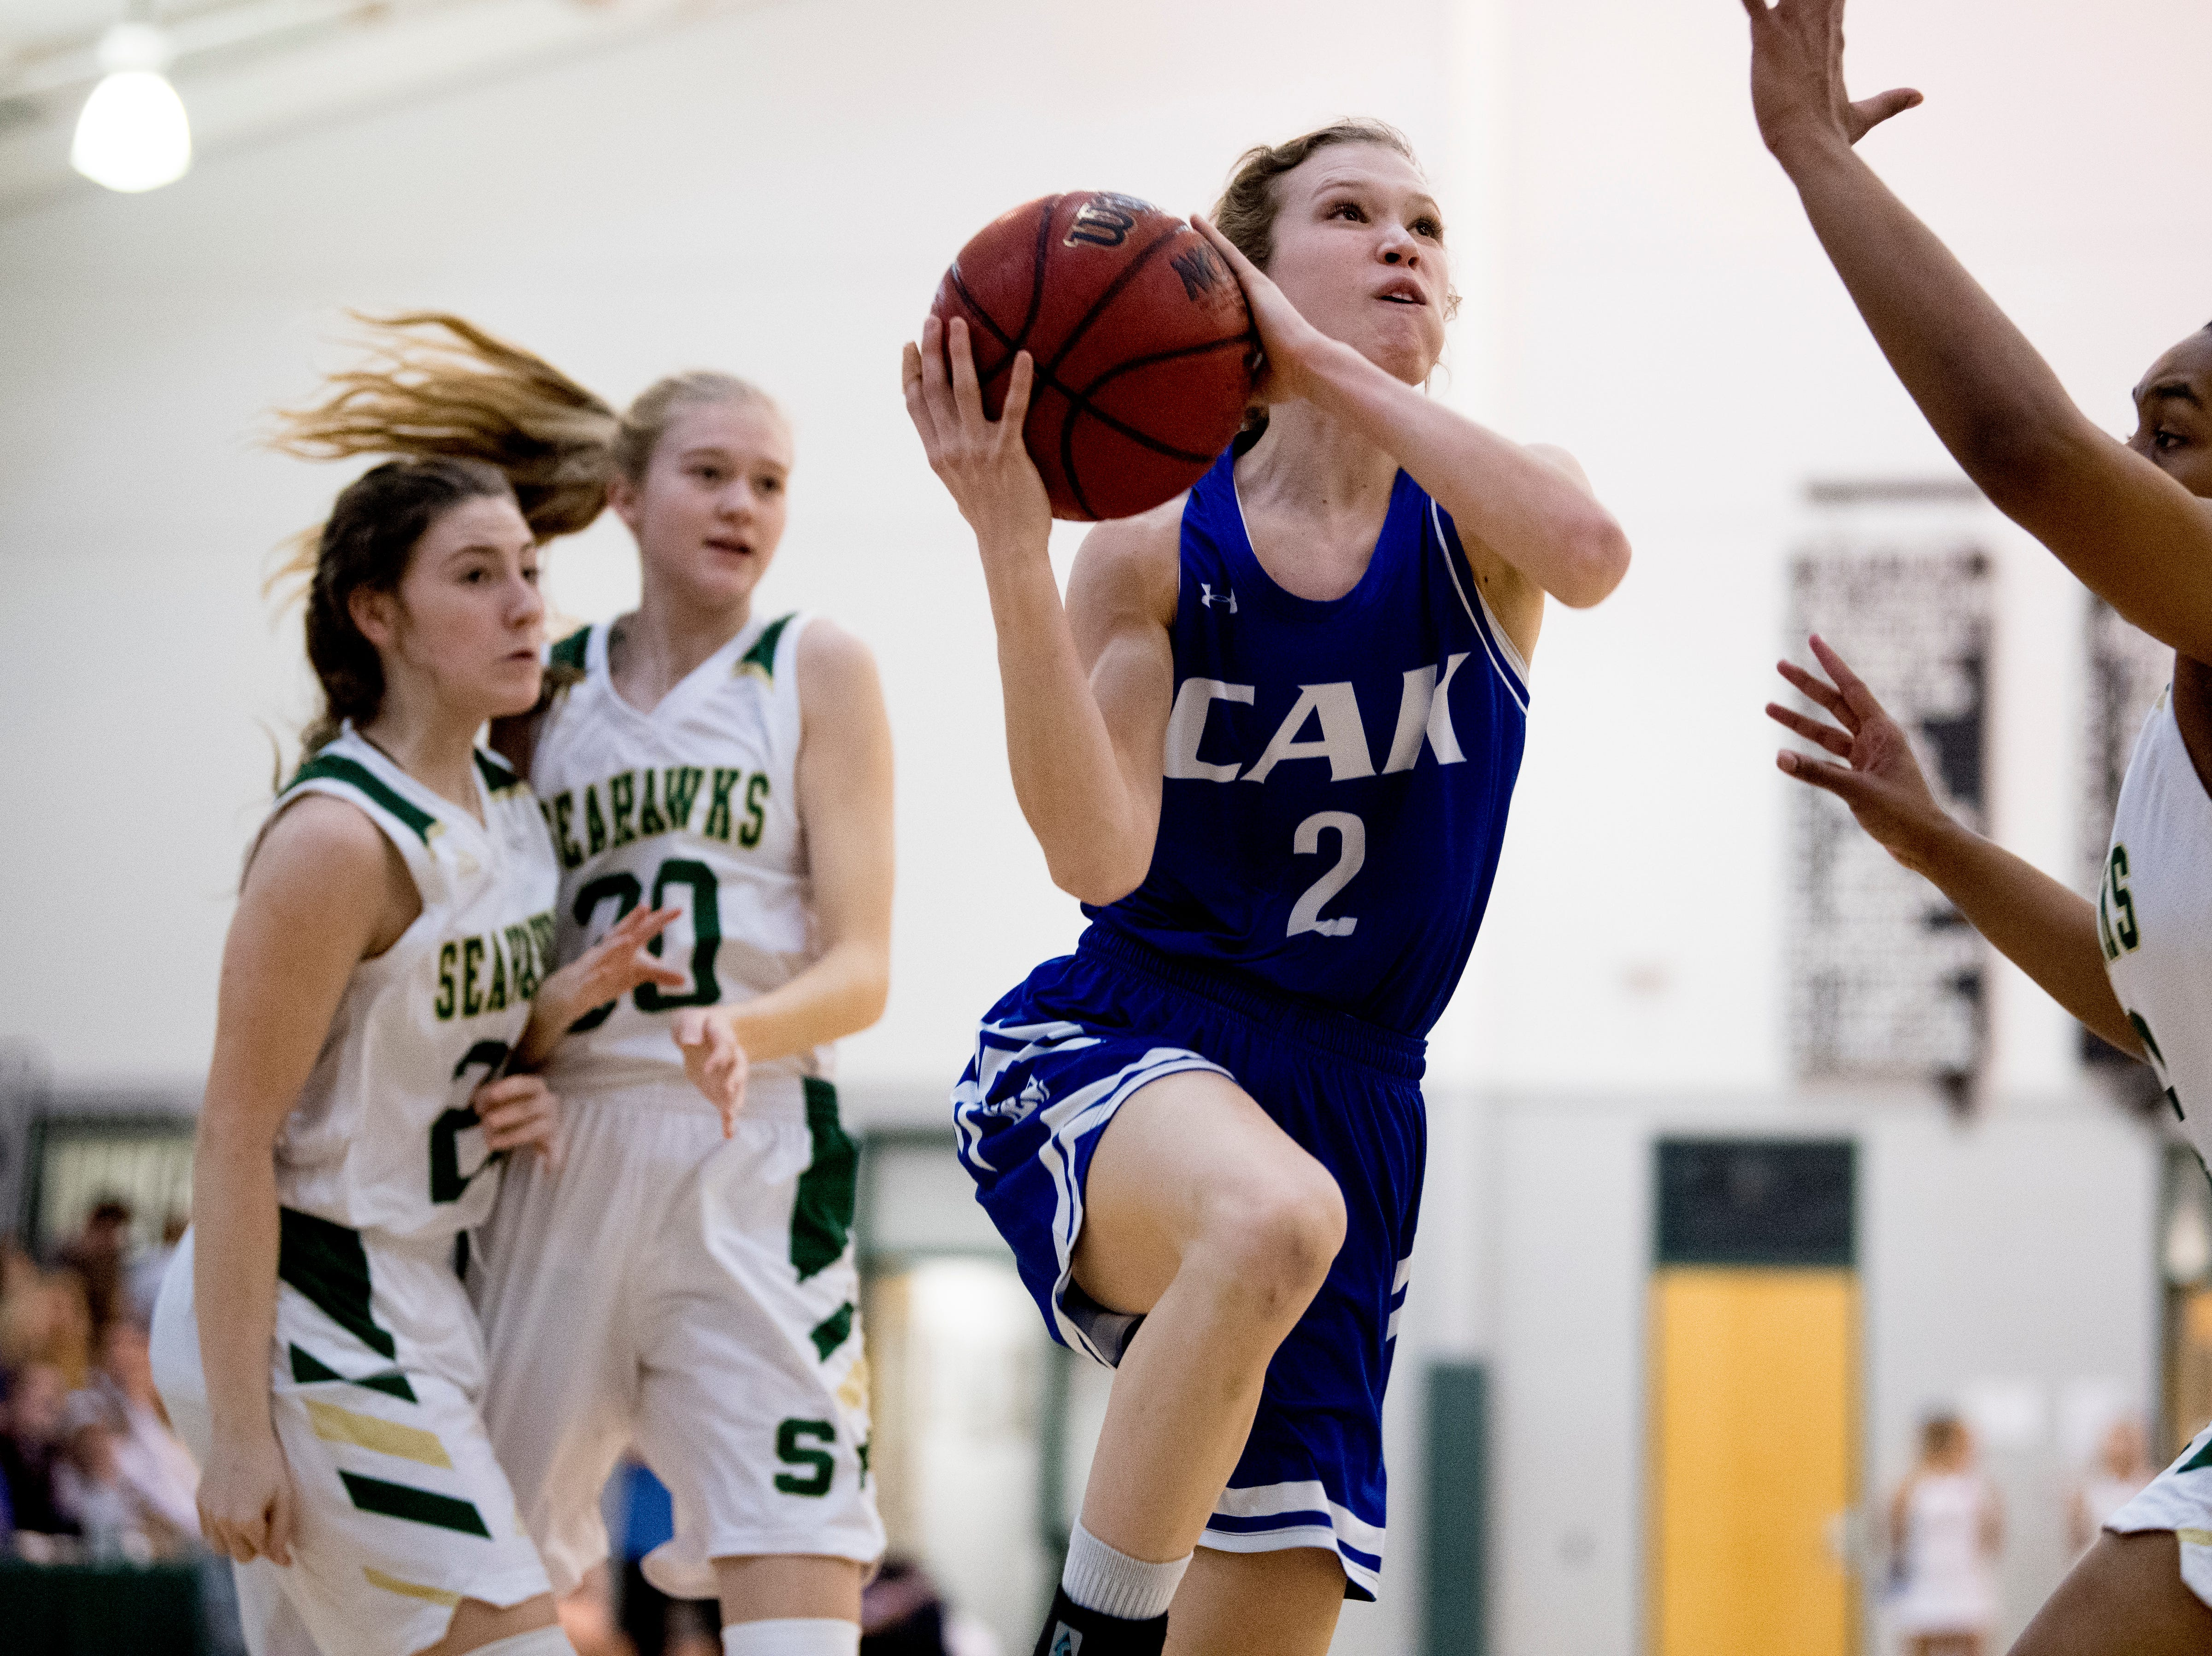 CAK's Claire Brock (2) goes for a layup during a semifinal game between CAK and Silverdale at Webb School of Knoxville in Knoxville, Tennessee on Friday, February 15, 2019.